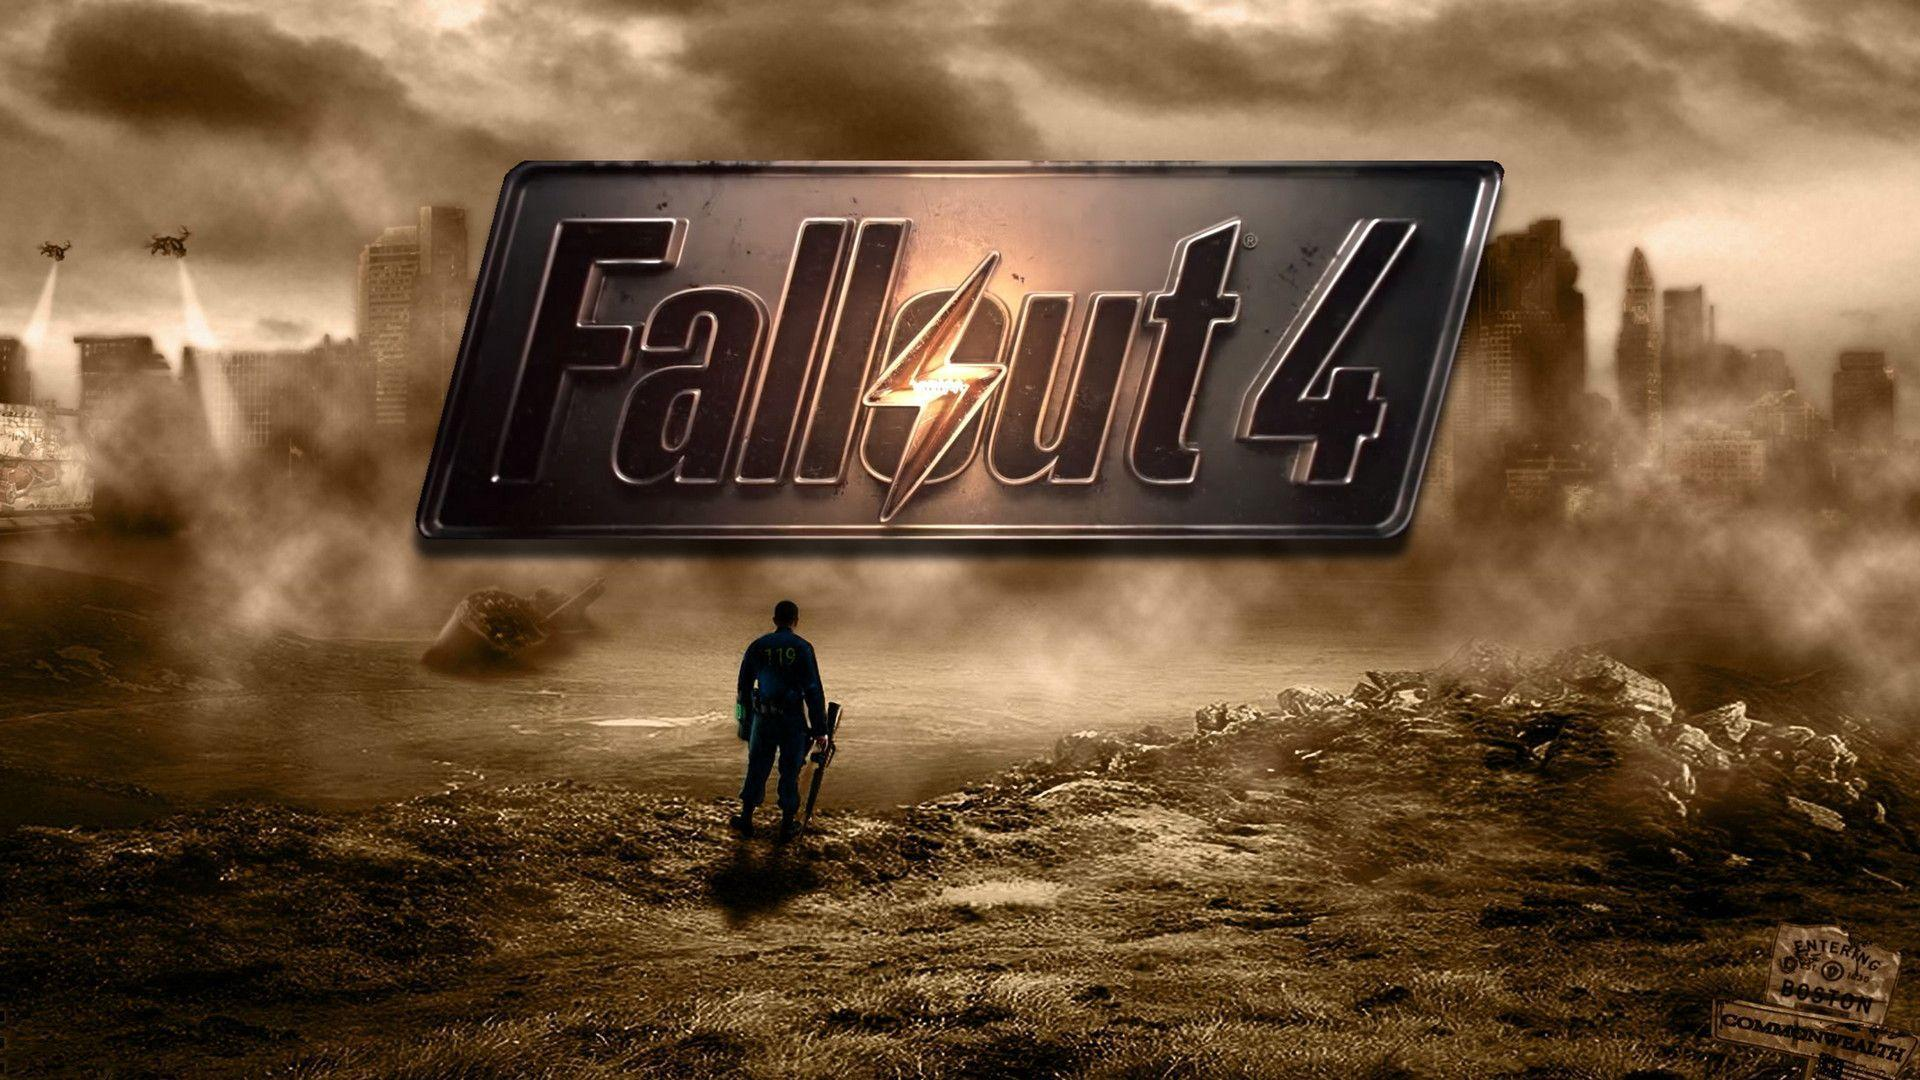 Fallout 4 Wallpapers - Wallpaper Cave